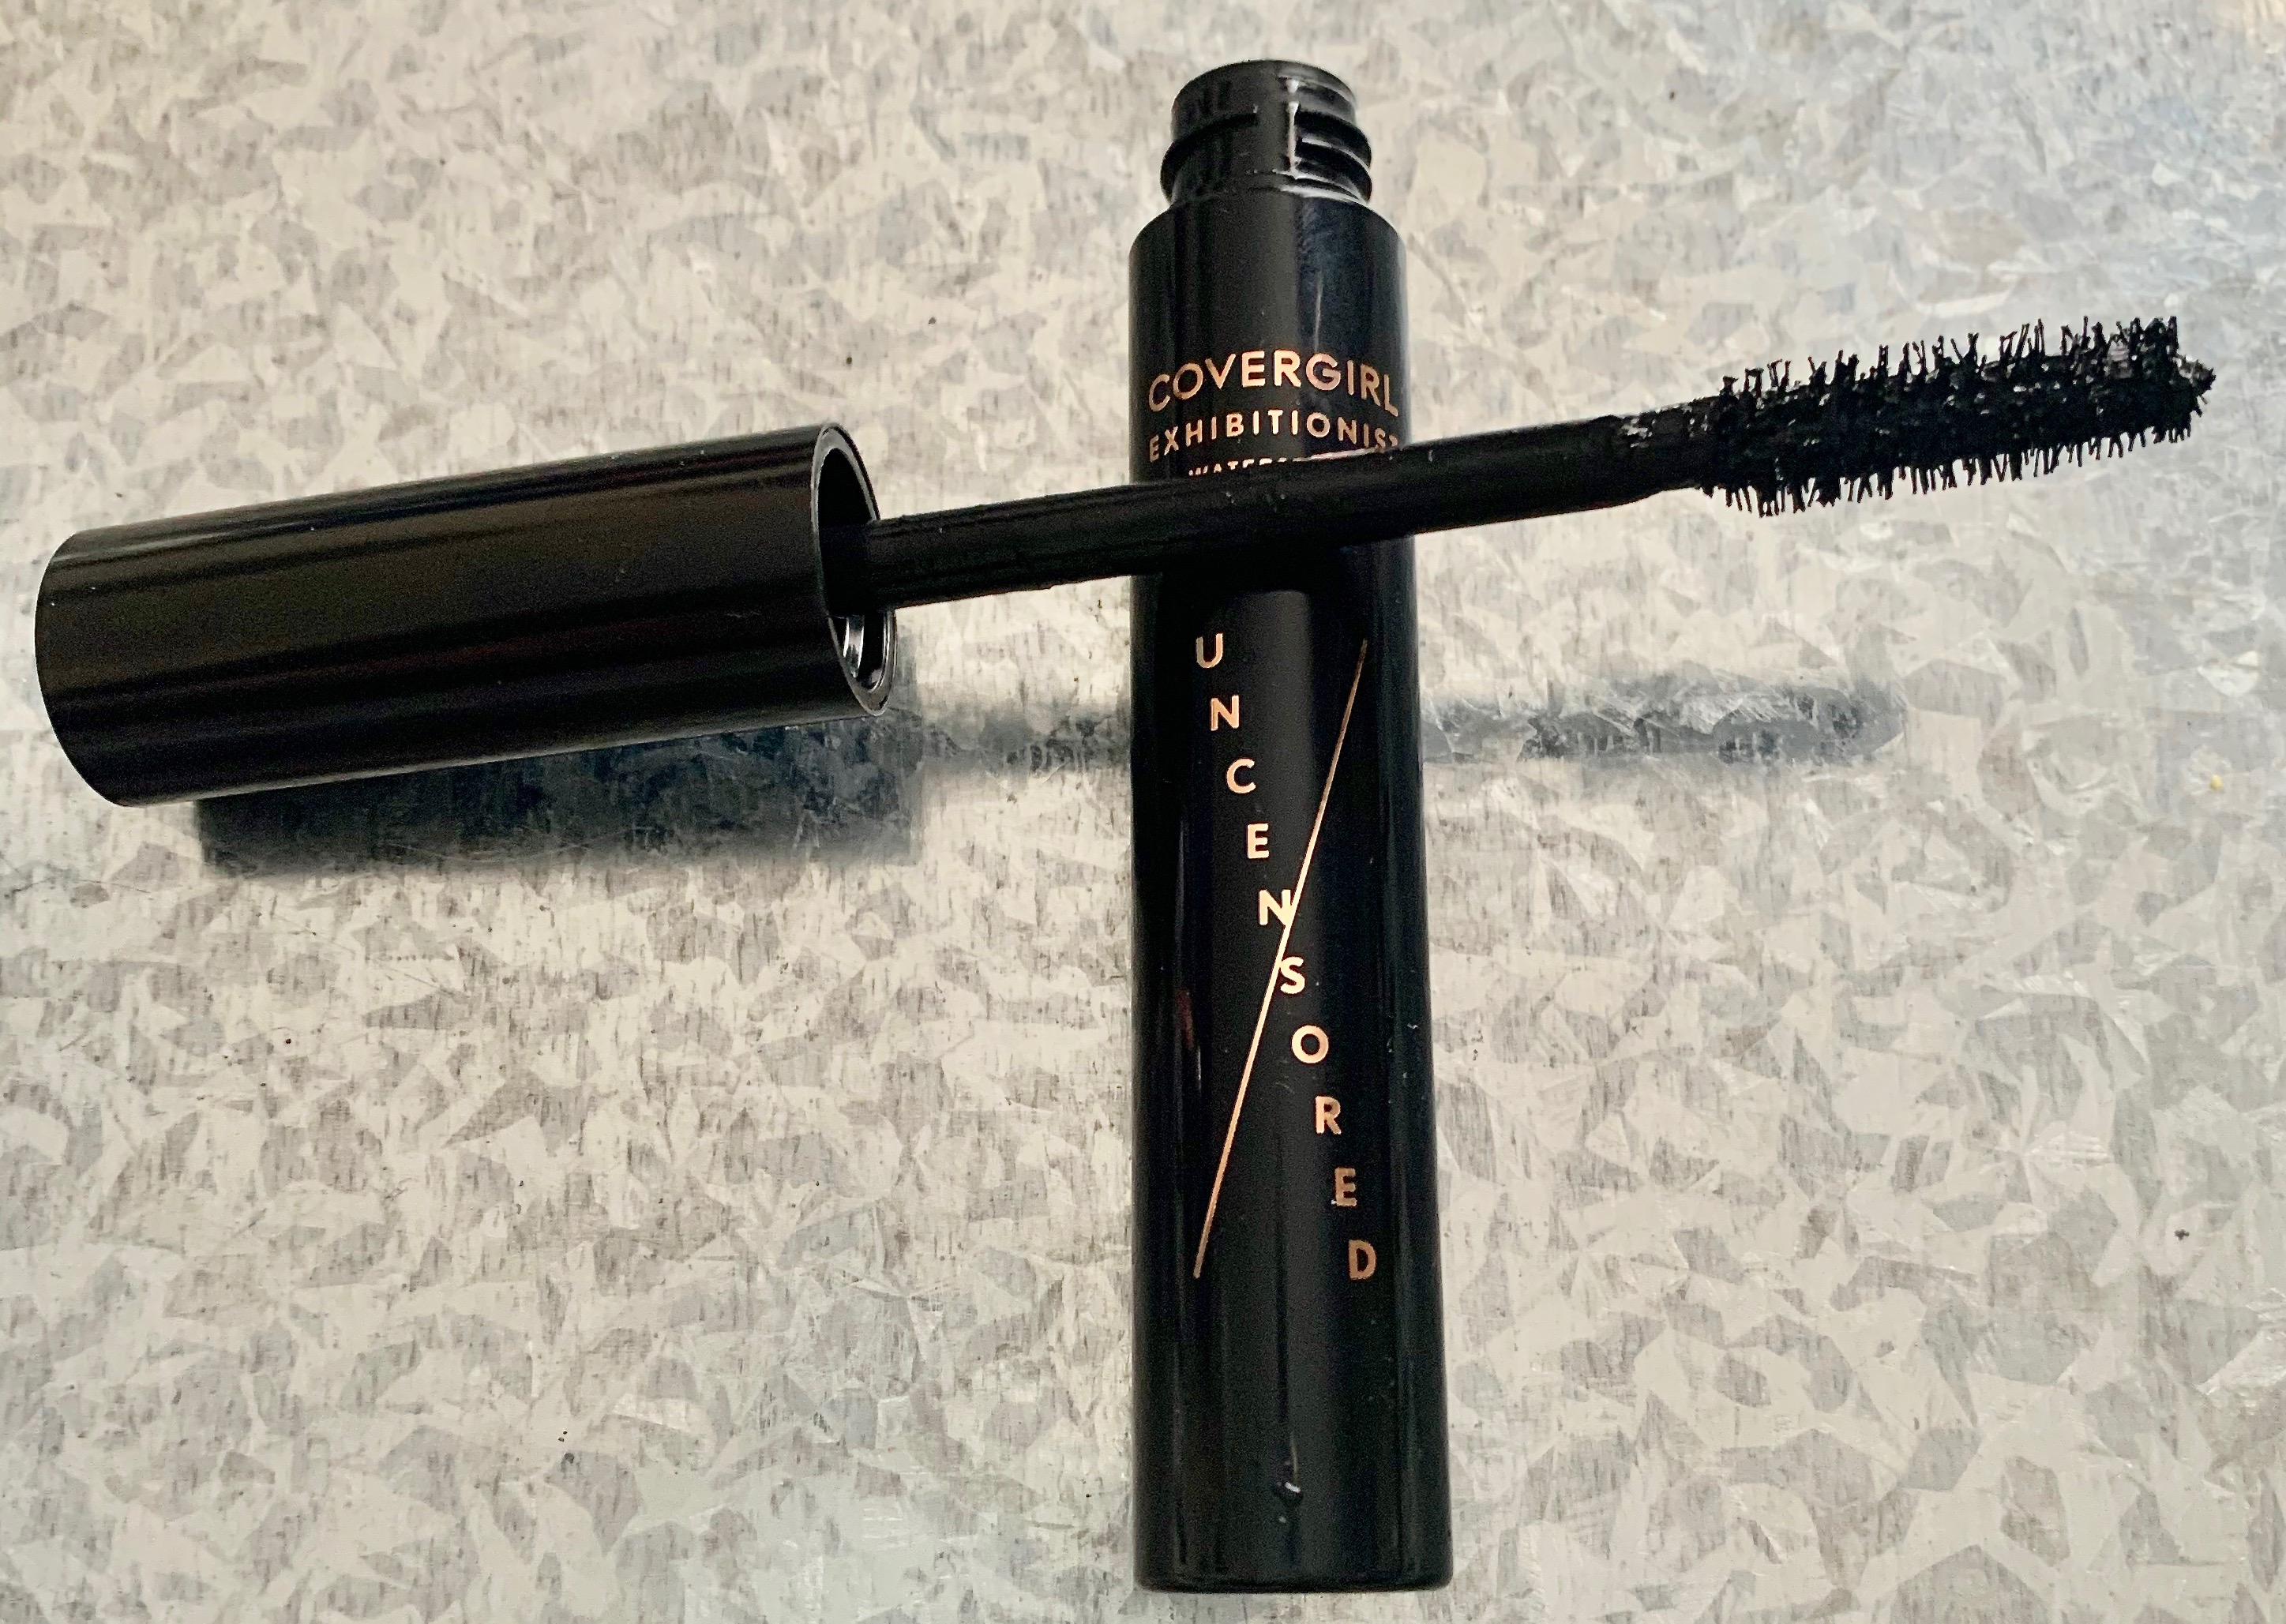 Covergirl Exhibitionist Uncensored Mascara Waterproof